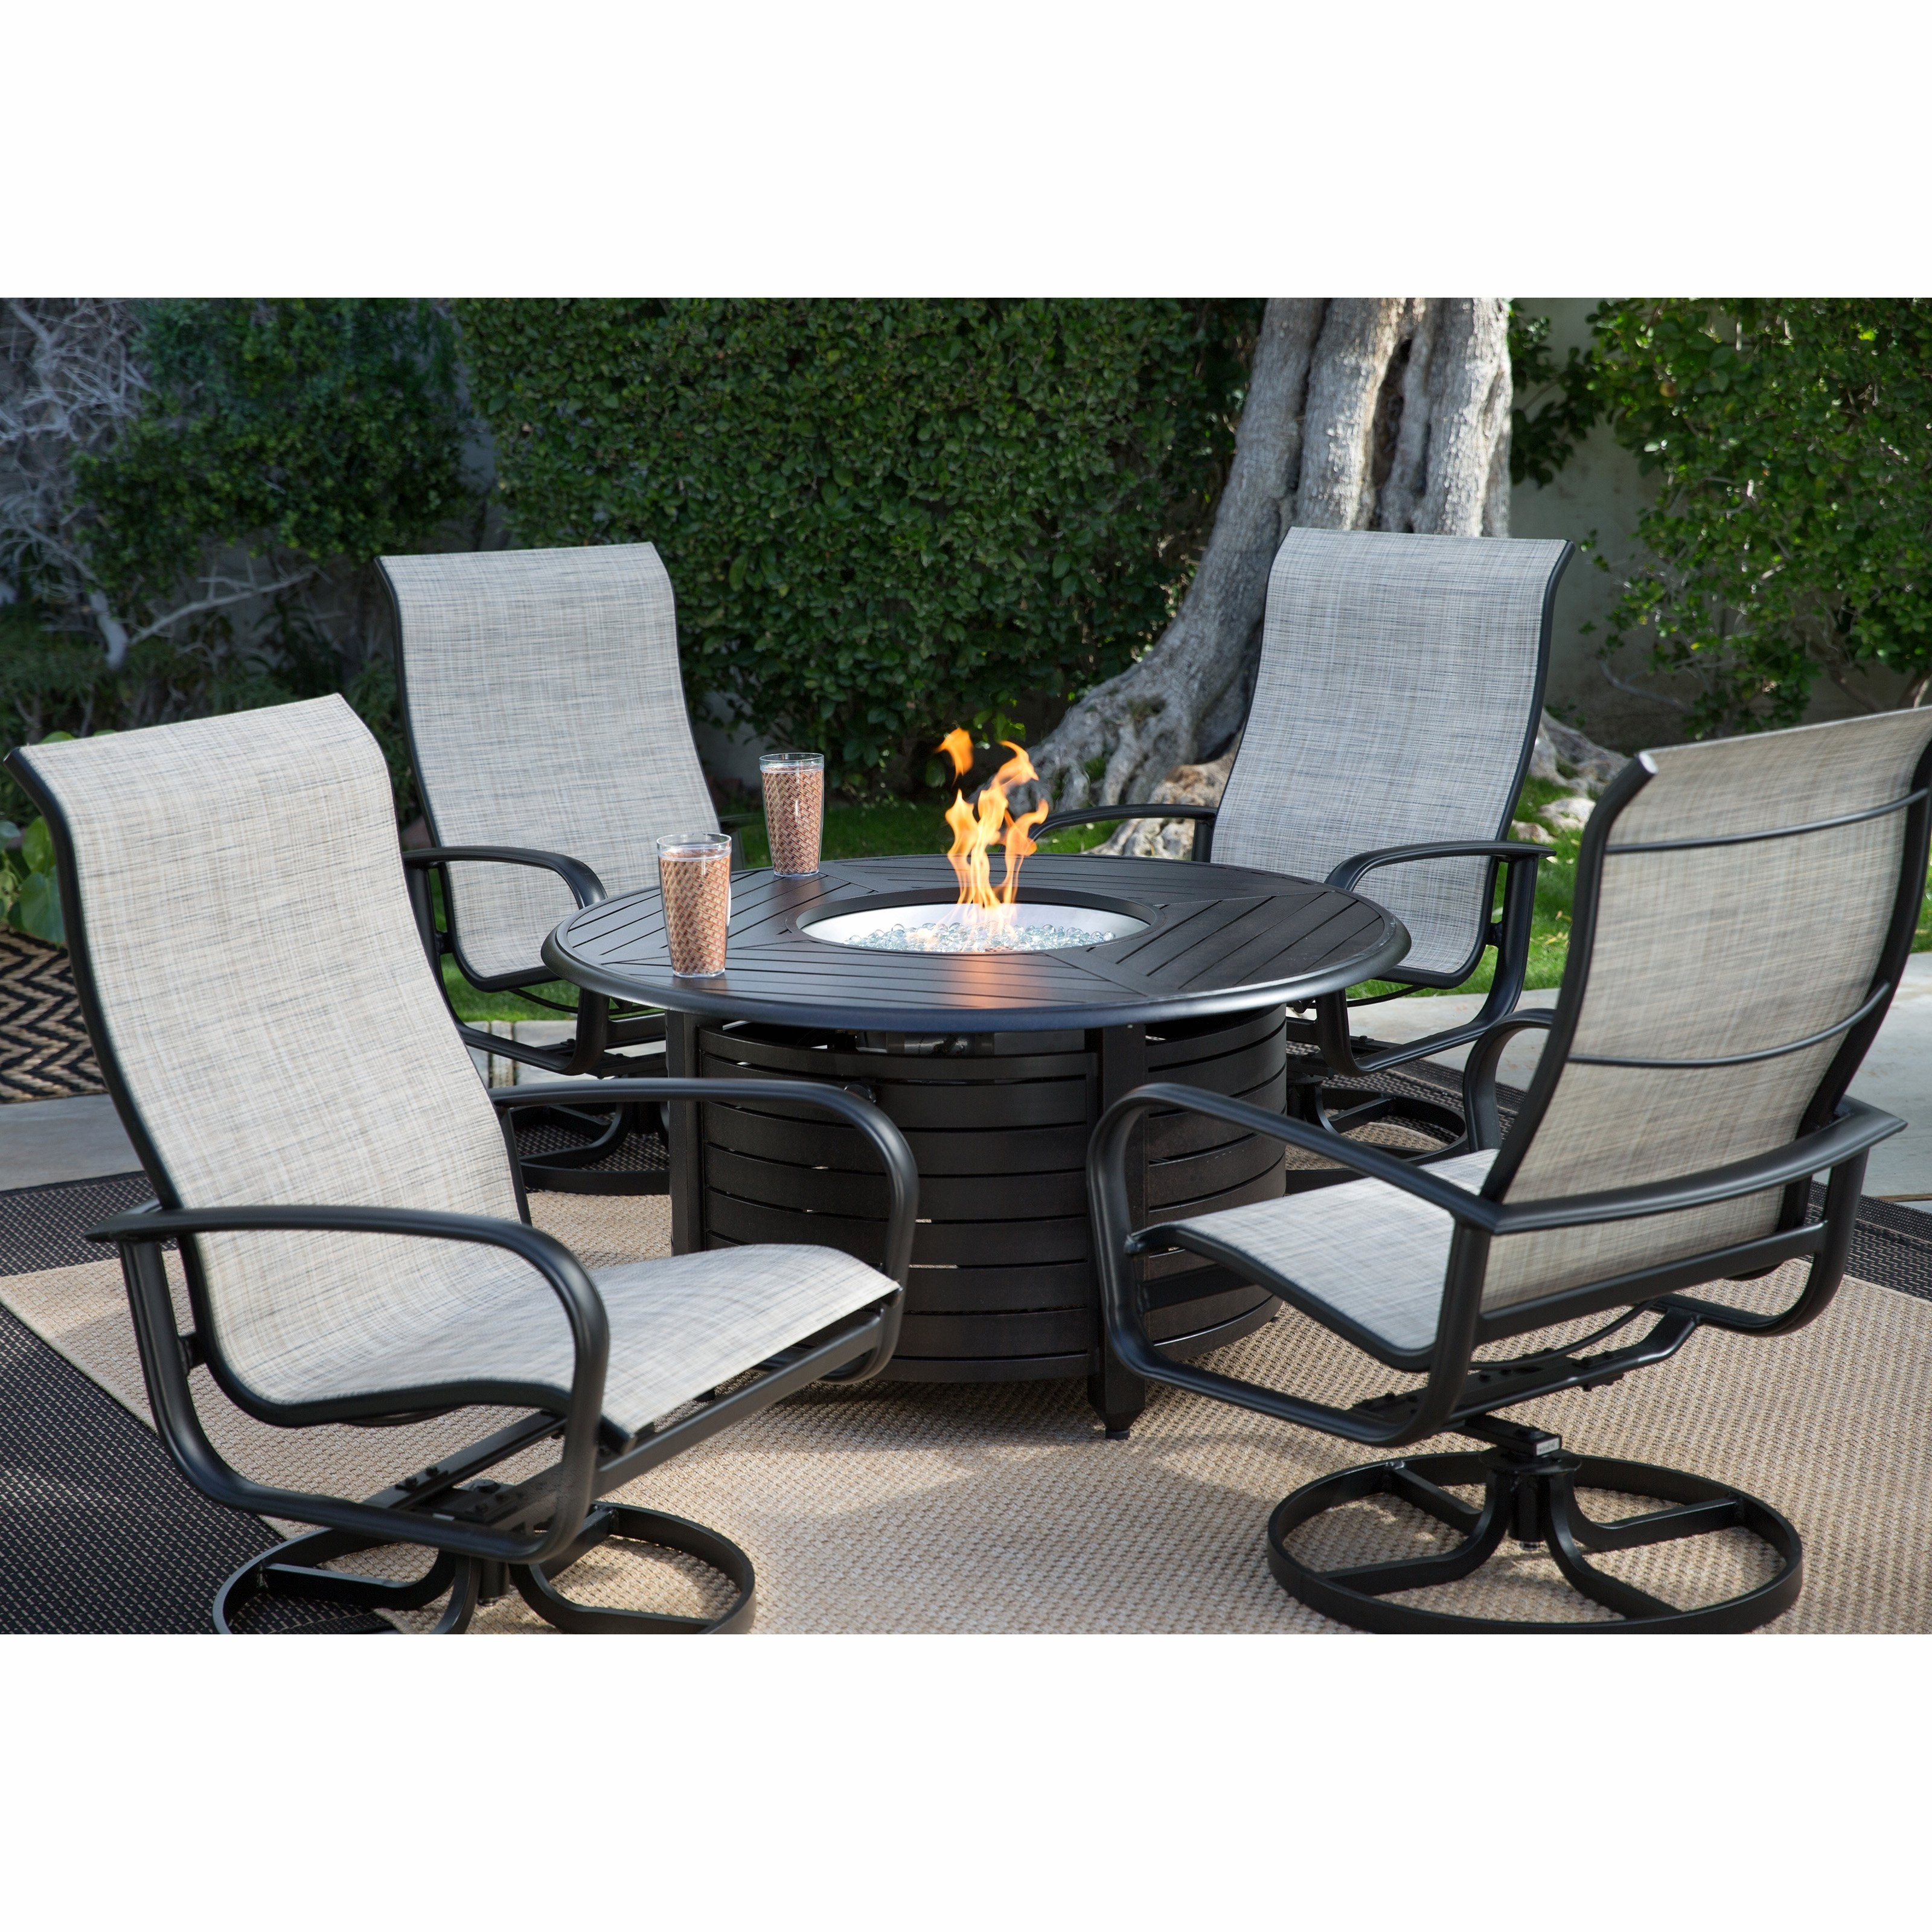 2018 Patio Conversation Sets With Gas Fire Pit In Patio Furniture With Gas Fire Pit Elegant Conversation Sets Outdoor (View 1 of 20)